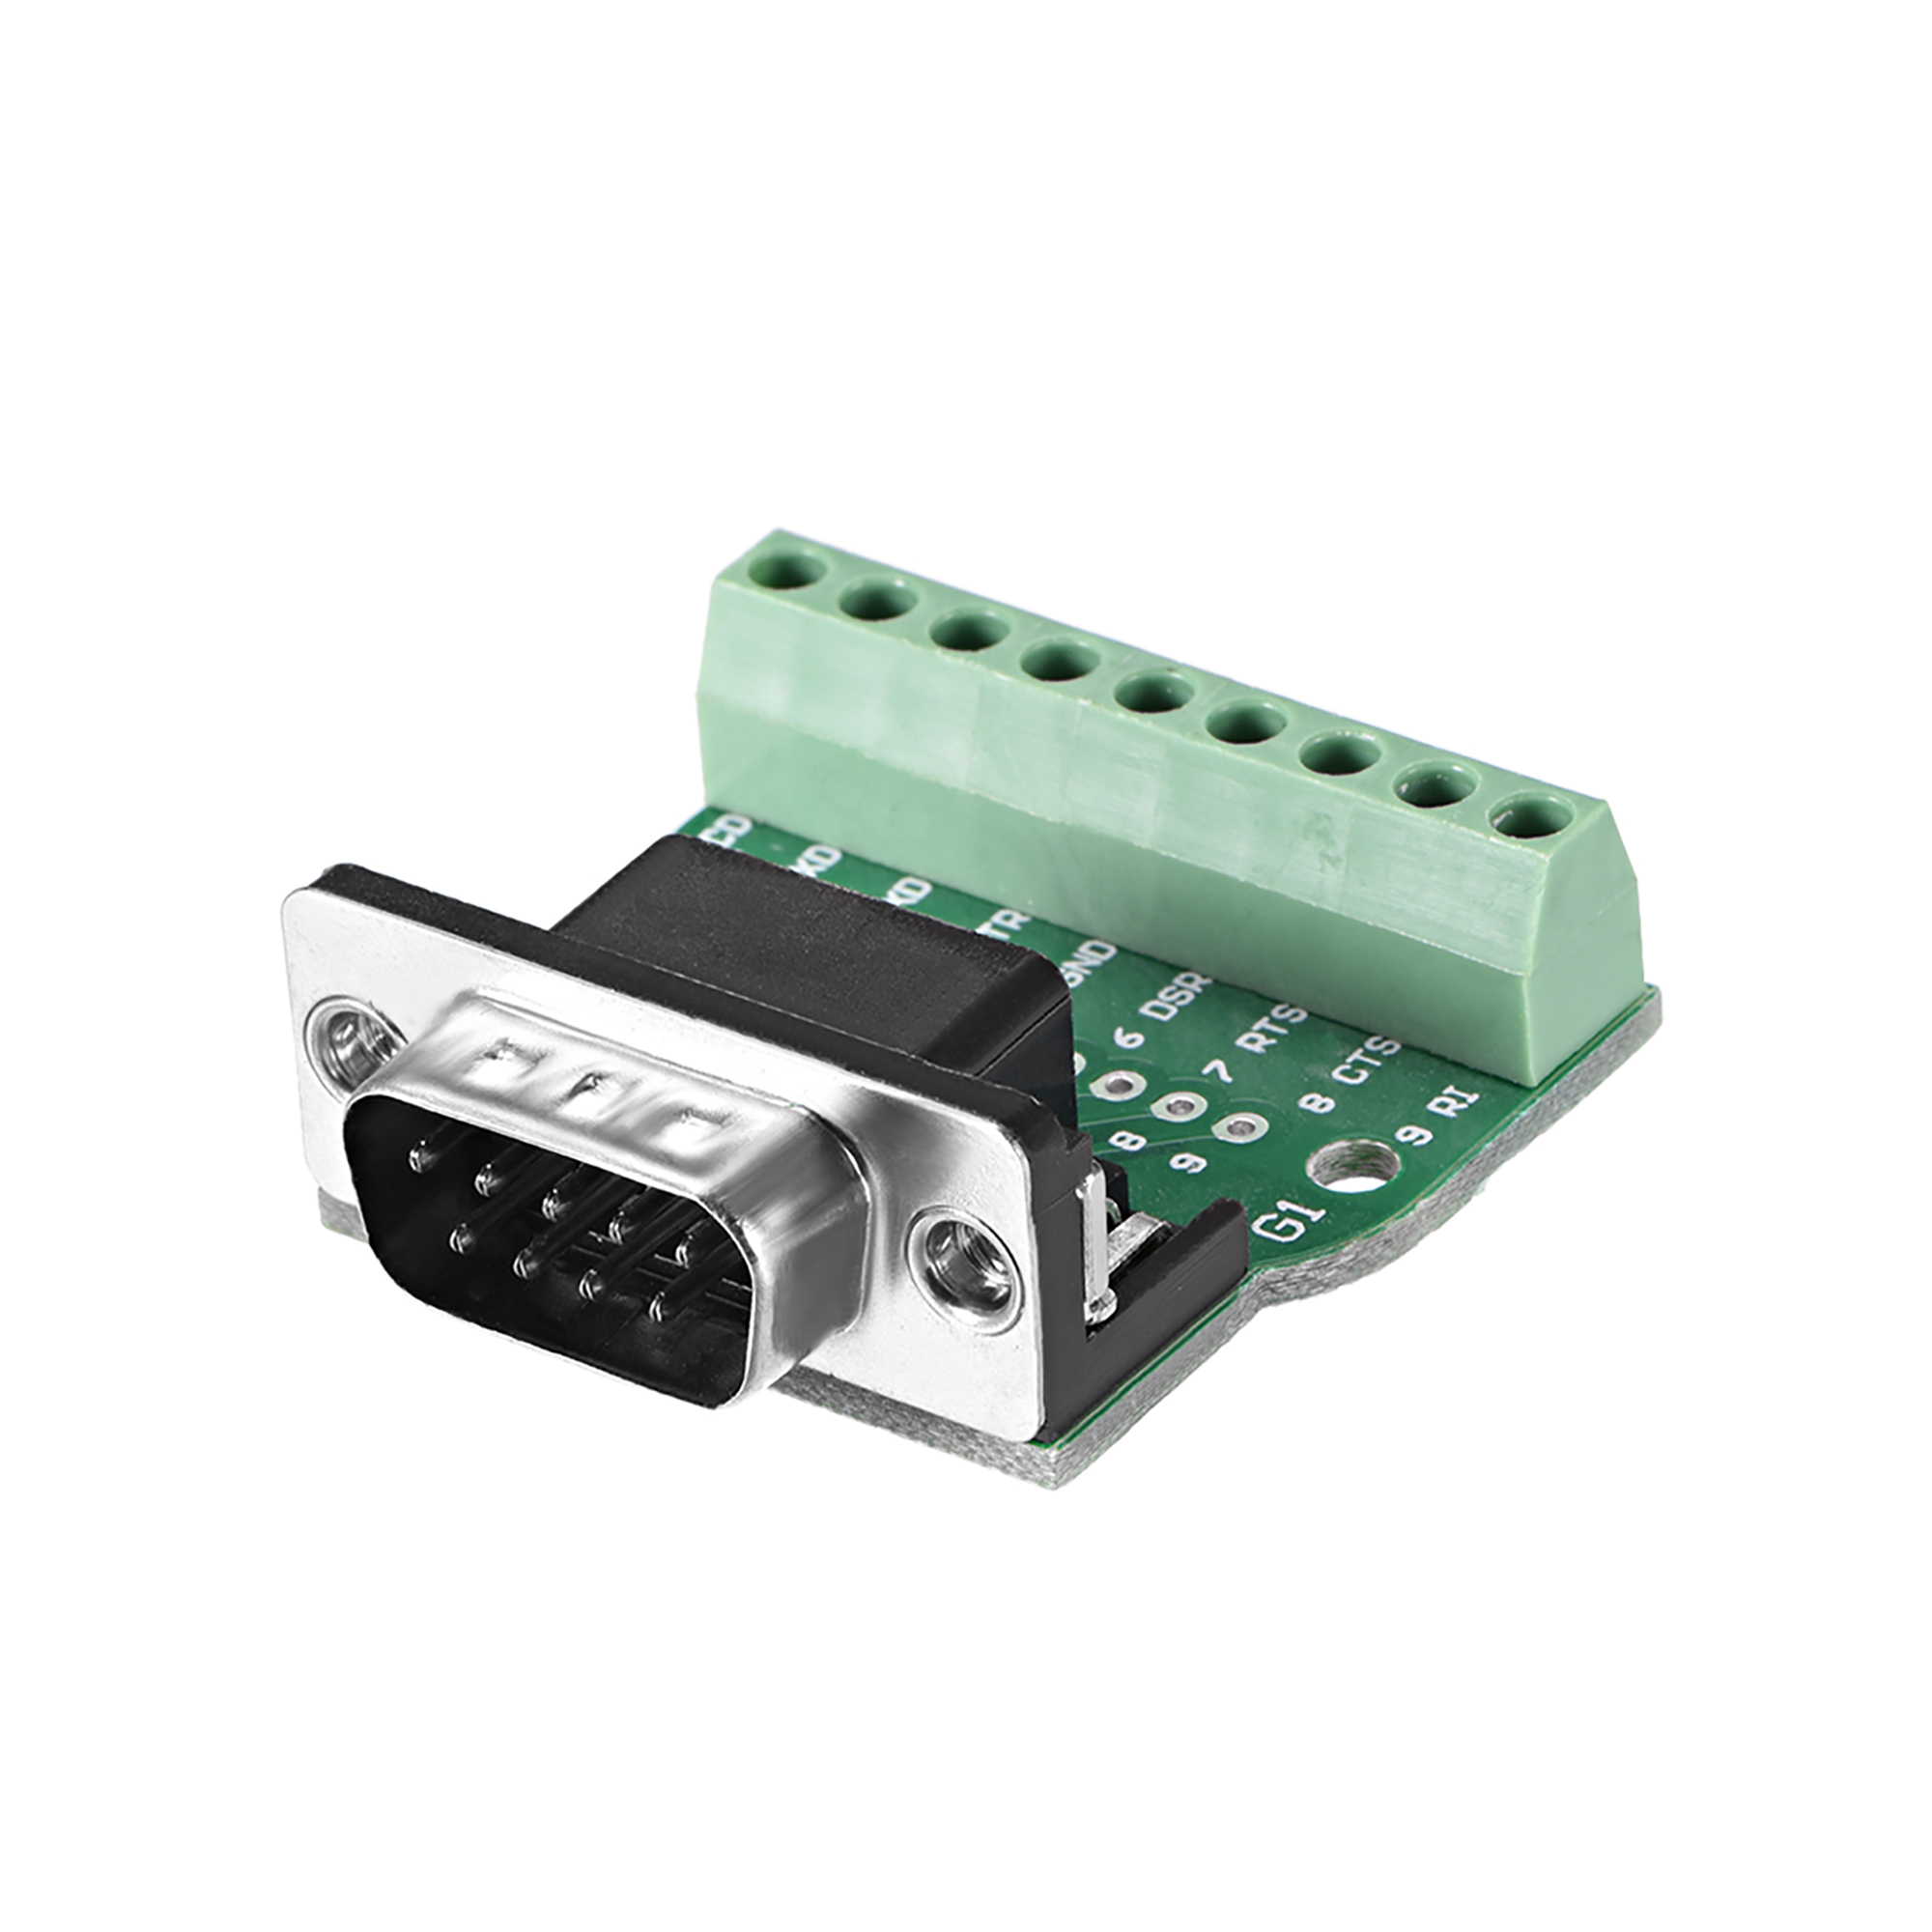 D-sub DB9 Breakout Board Connector 9 Pin 2 Row Male RS232 Serial Port Solderless Terminal Block Adapter - image 4 de 4